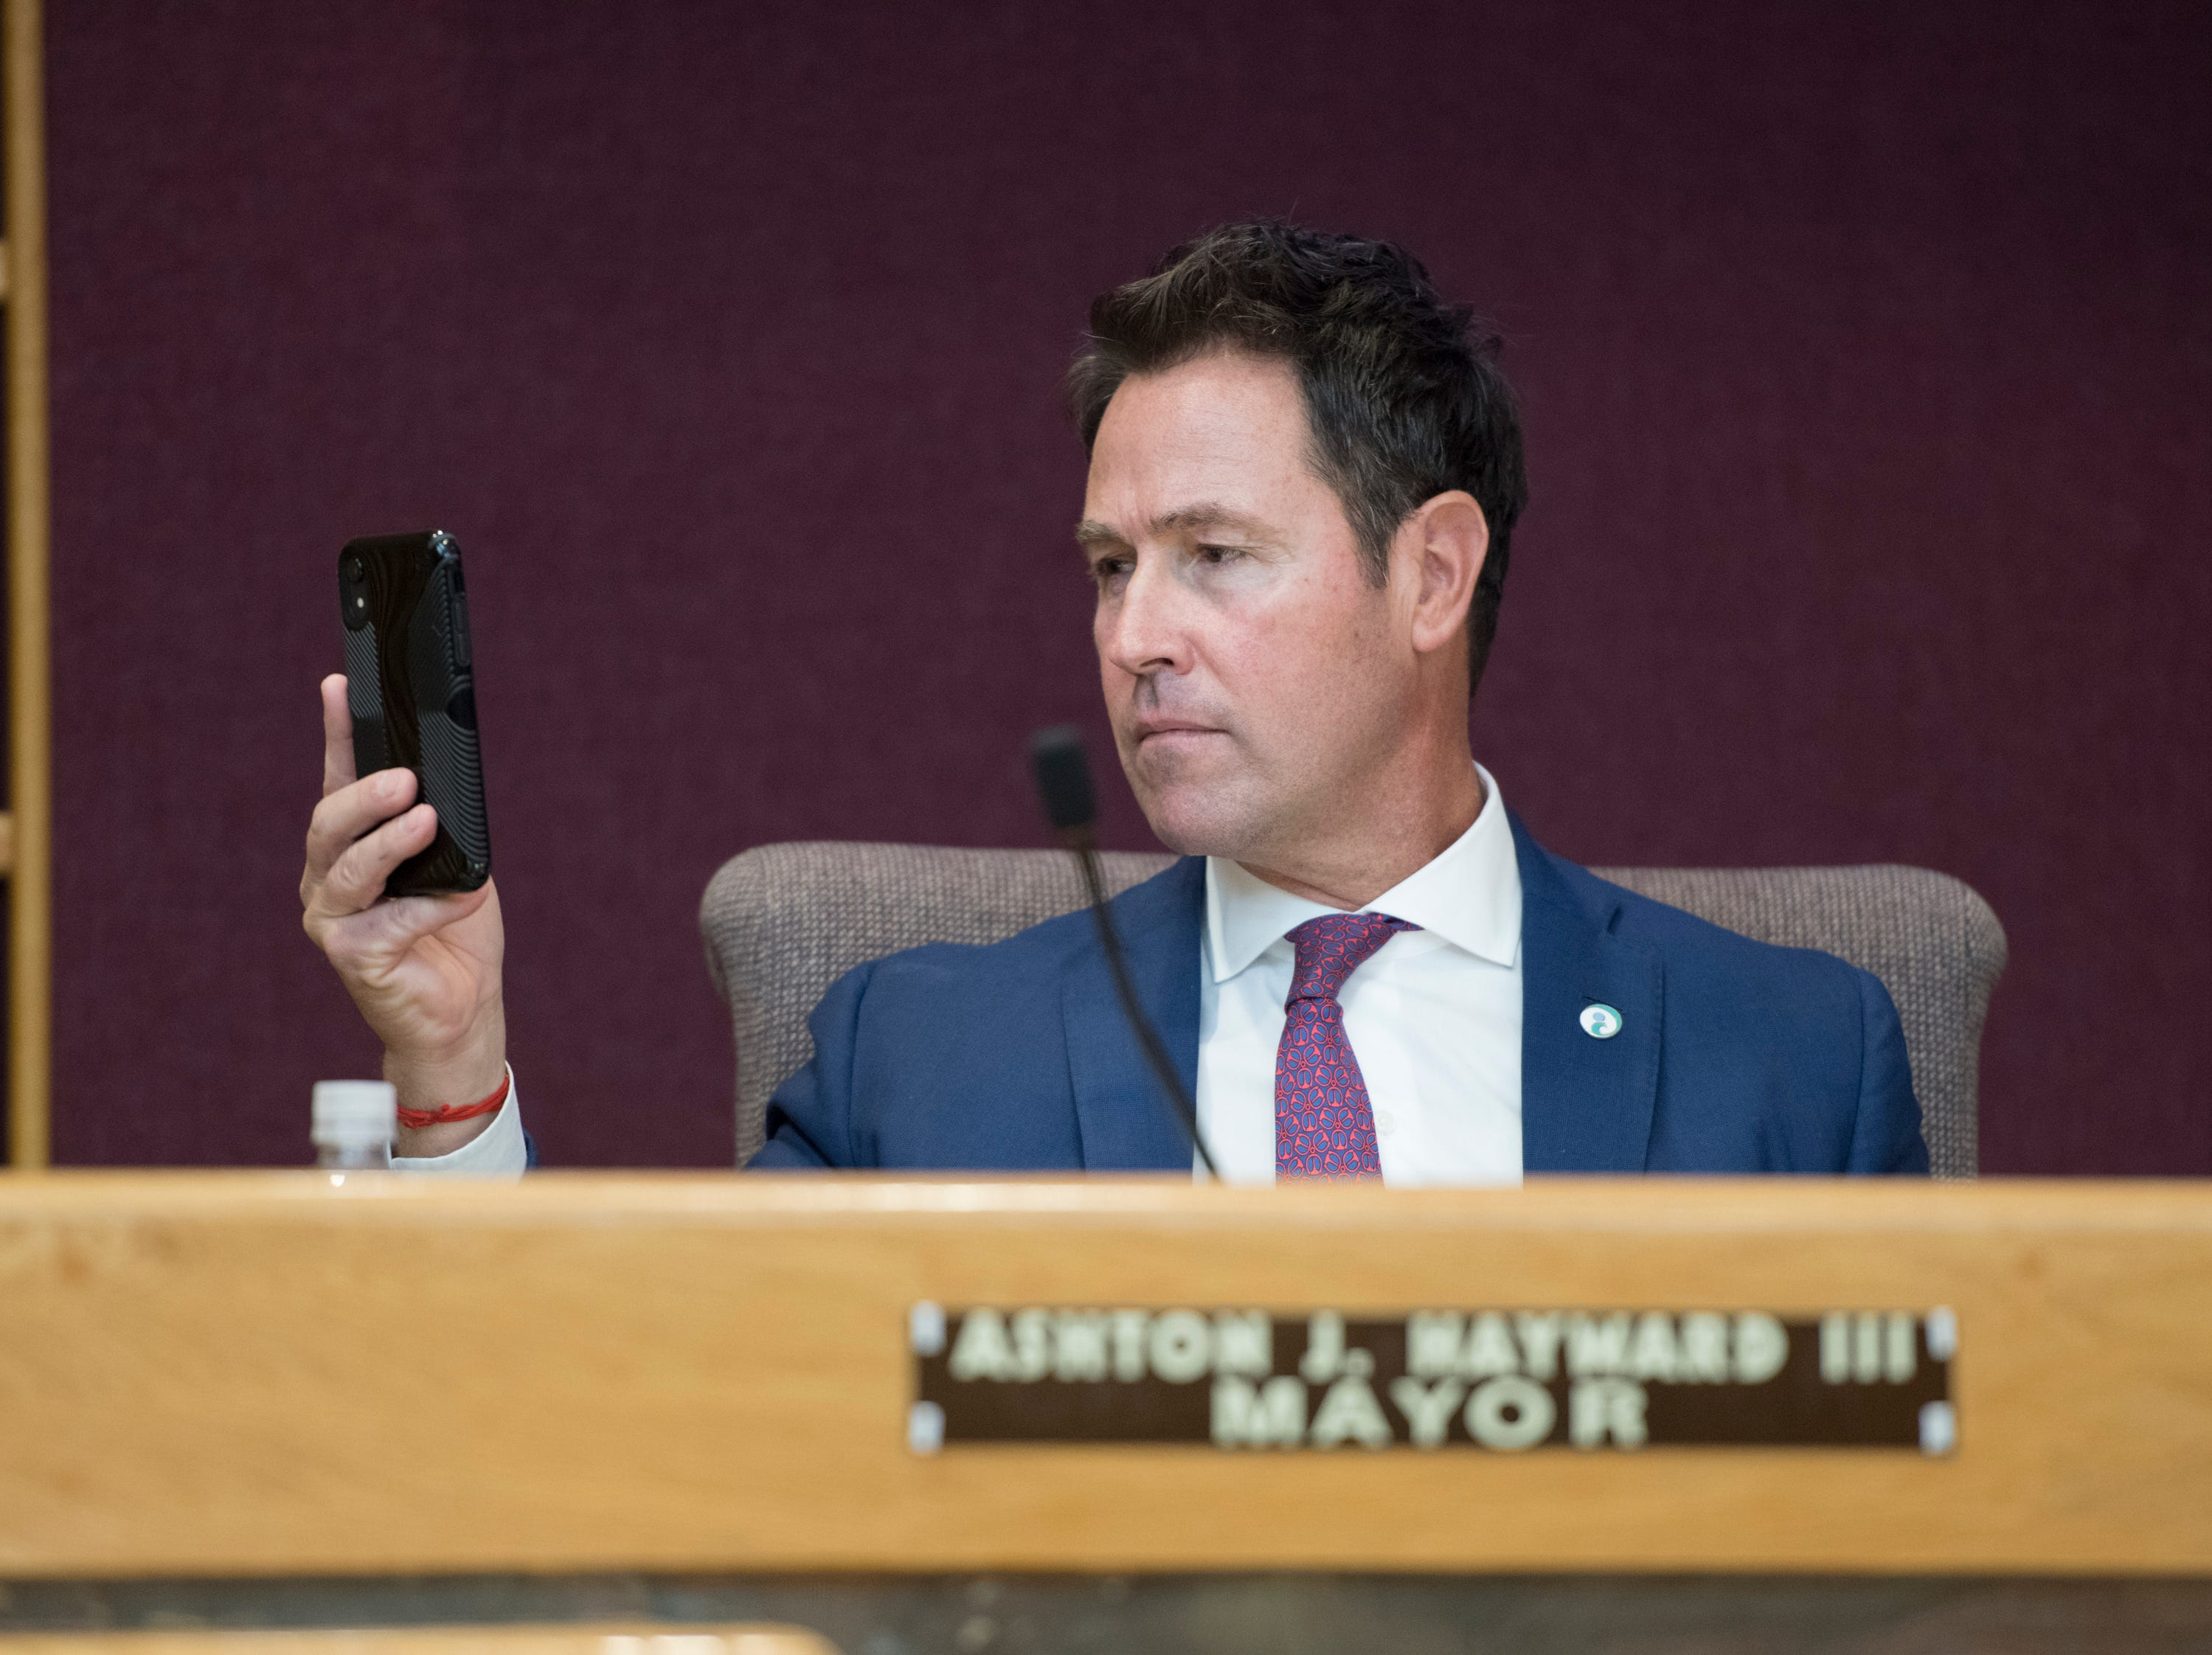 Outgoing Mayor Ashton Hayward snaps some photos prior to the Pensacola City Council and Mayor installation ceremony at City Hall in Pensacola on Tuesday, November 27, 2018.